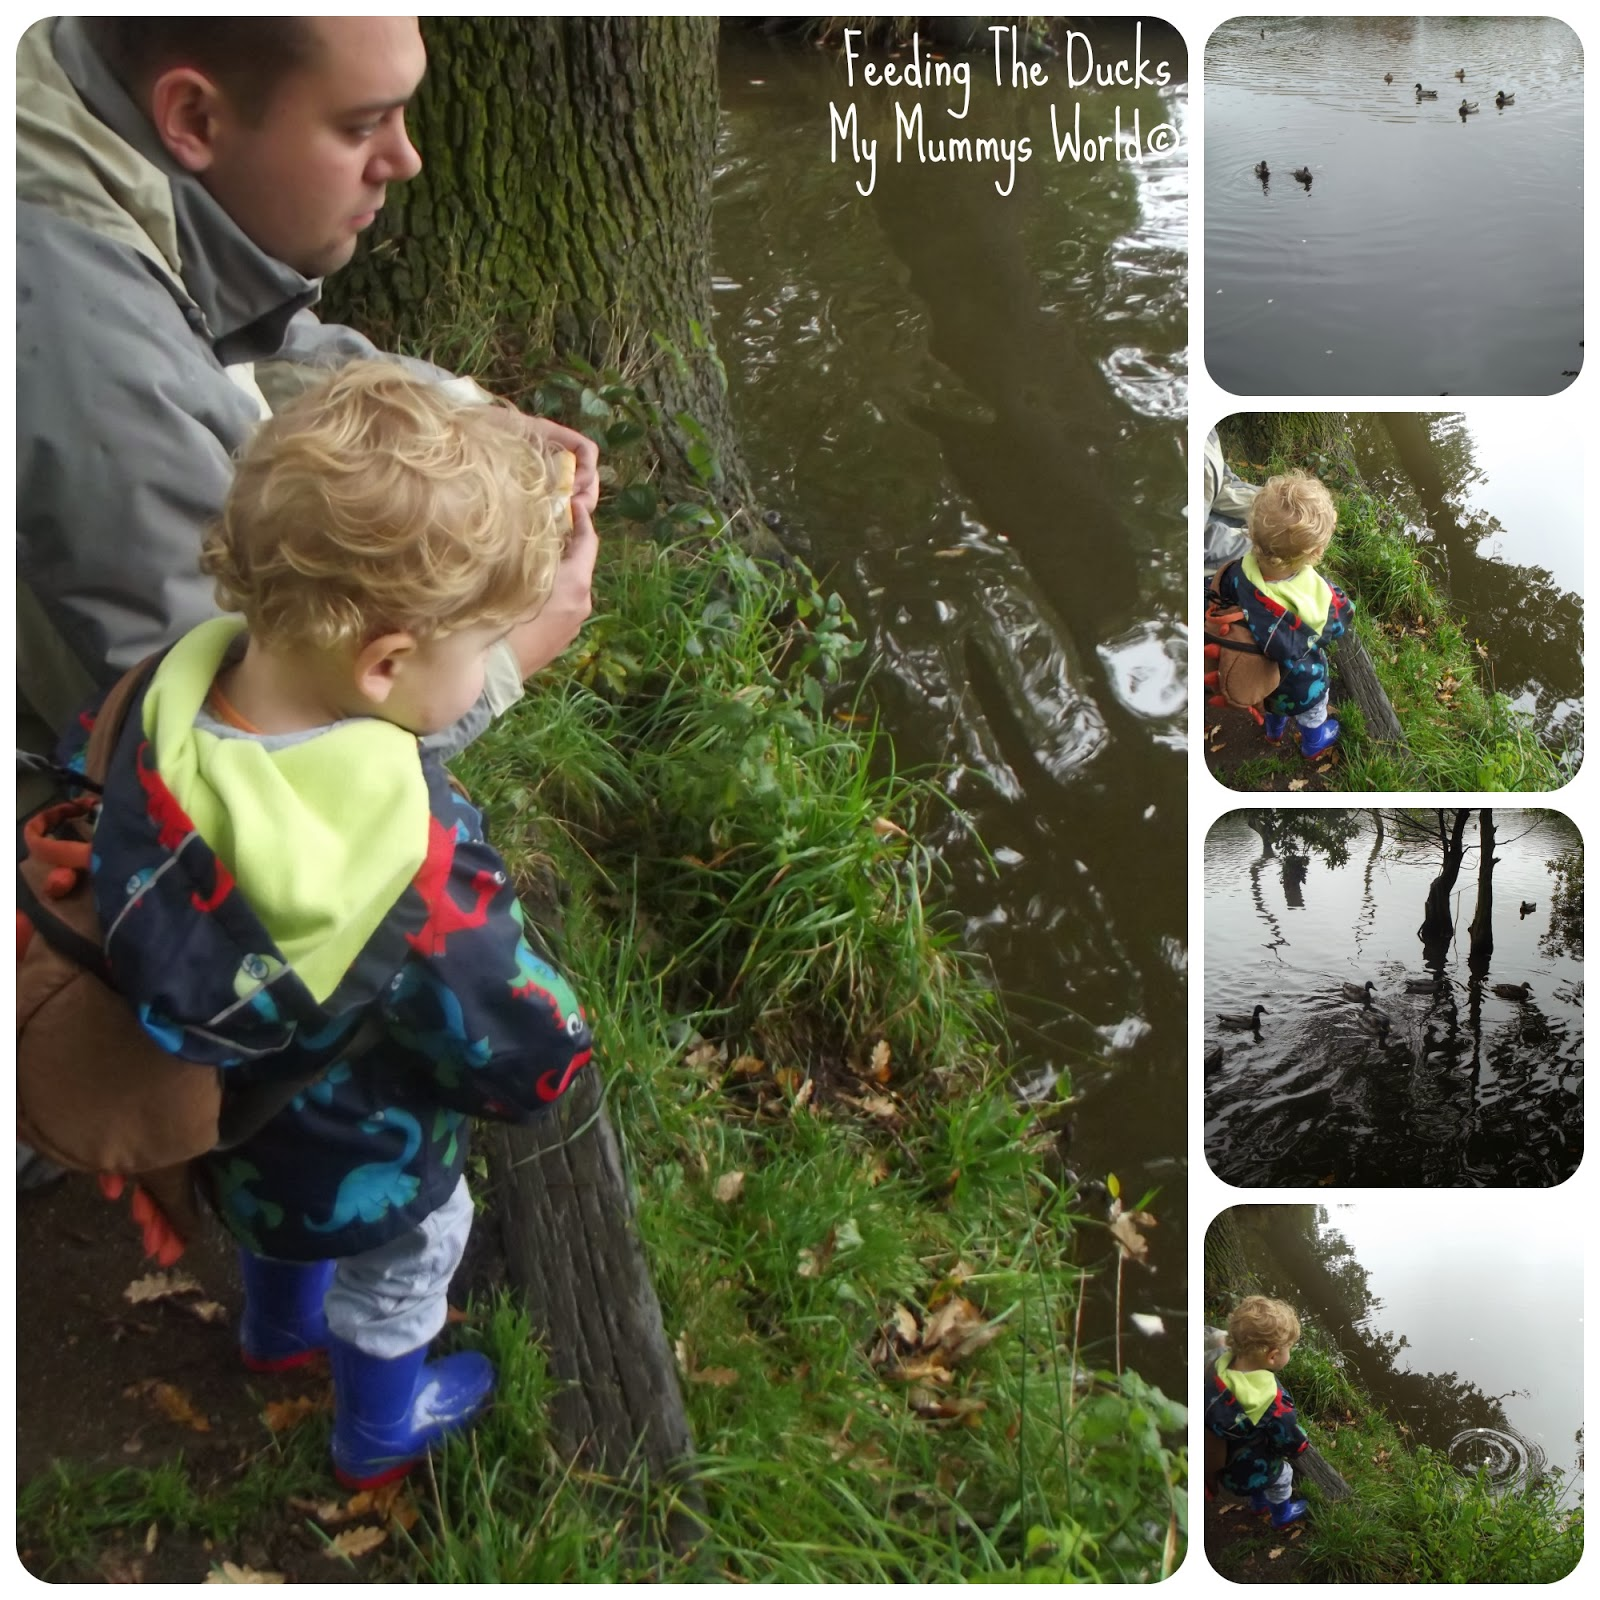 Feeding The Ducks. My Mummys World©